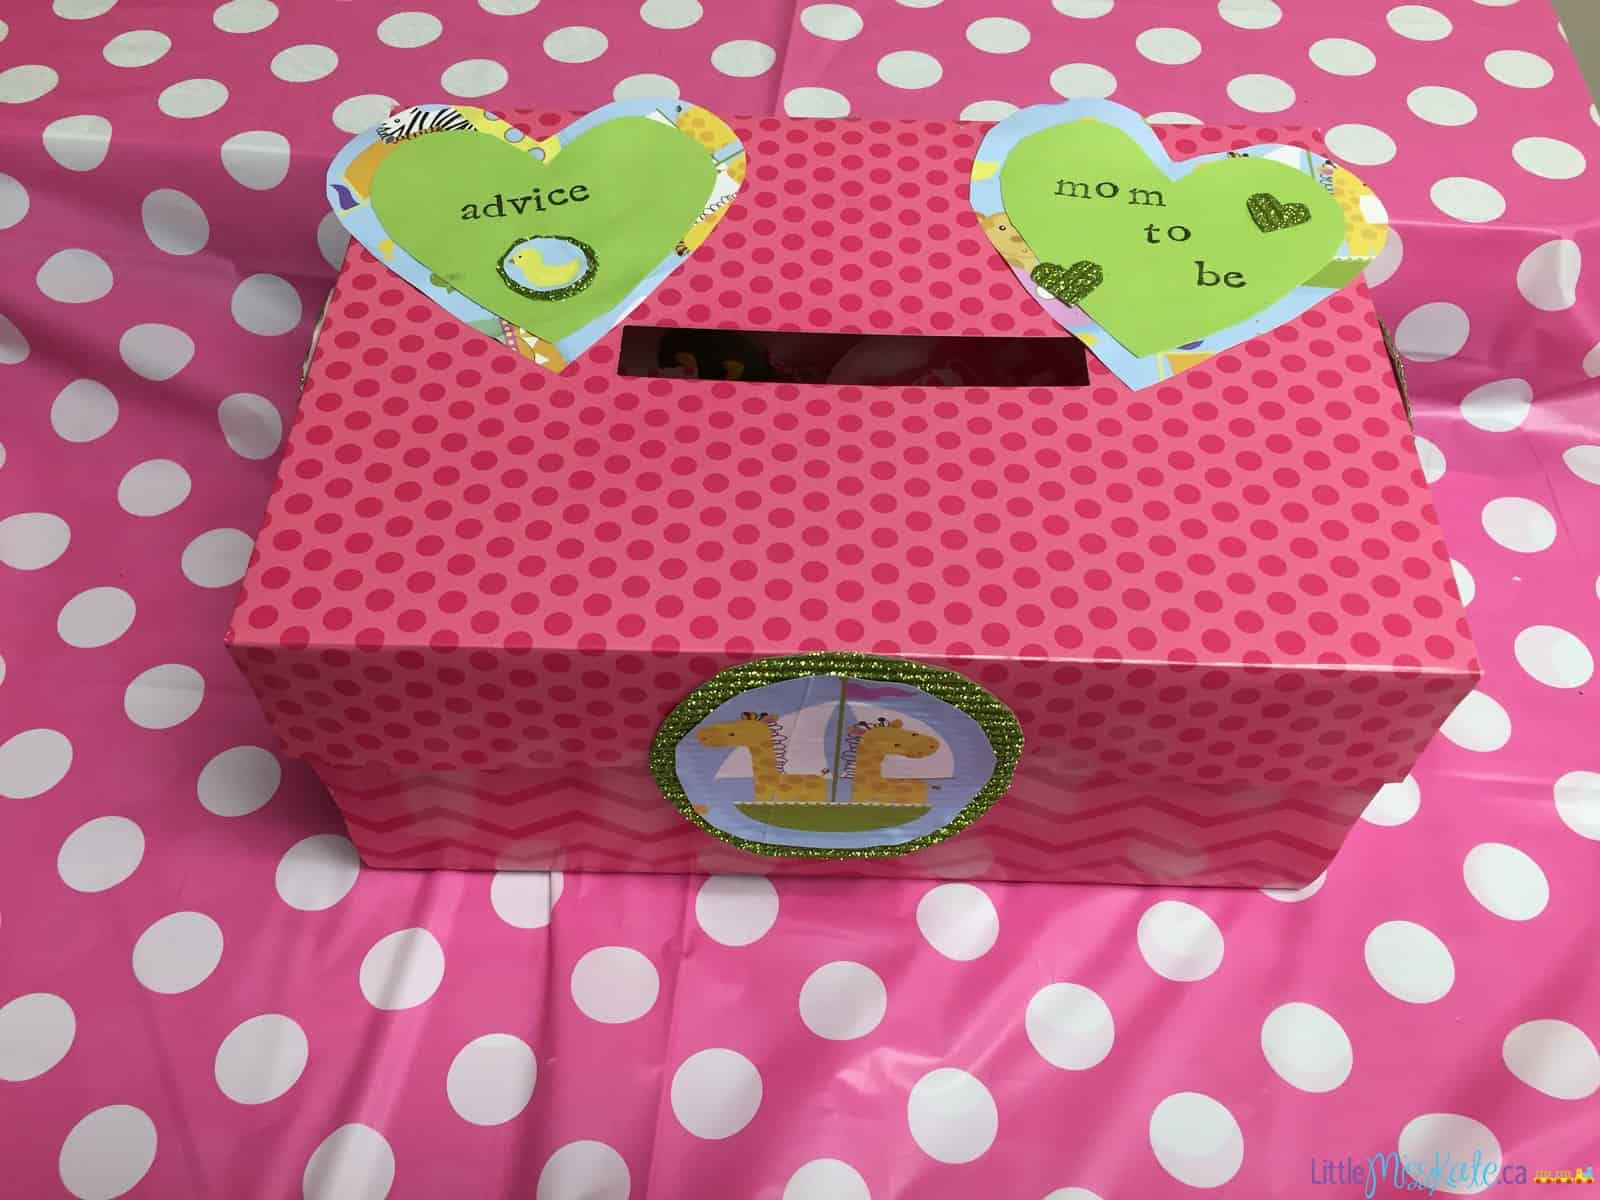 Baby shower game Ideas - Advice & Well Wishes Box